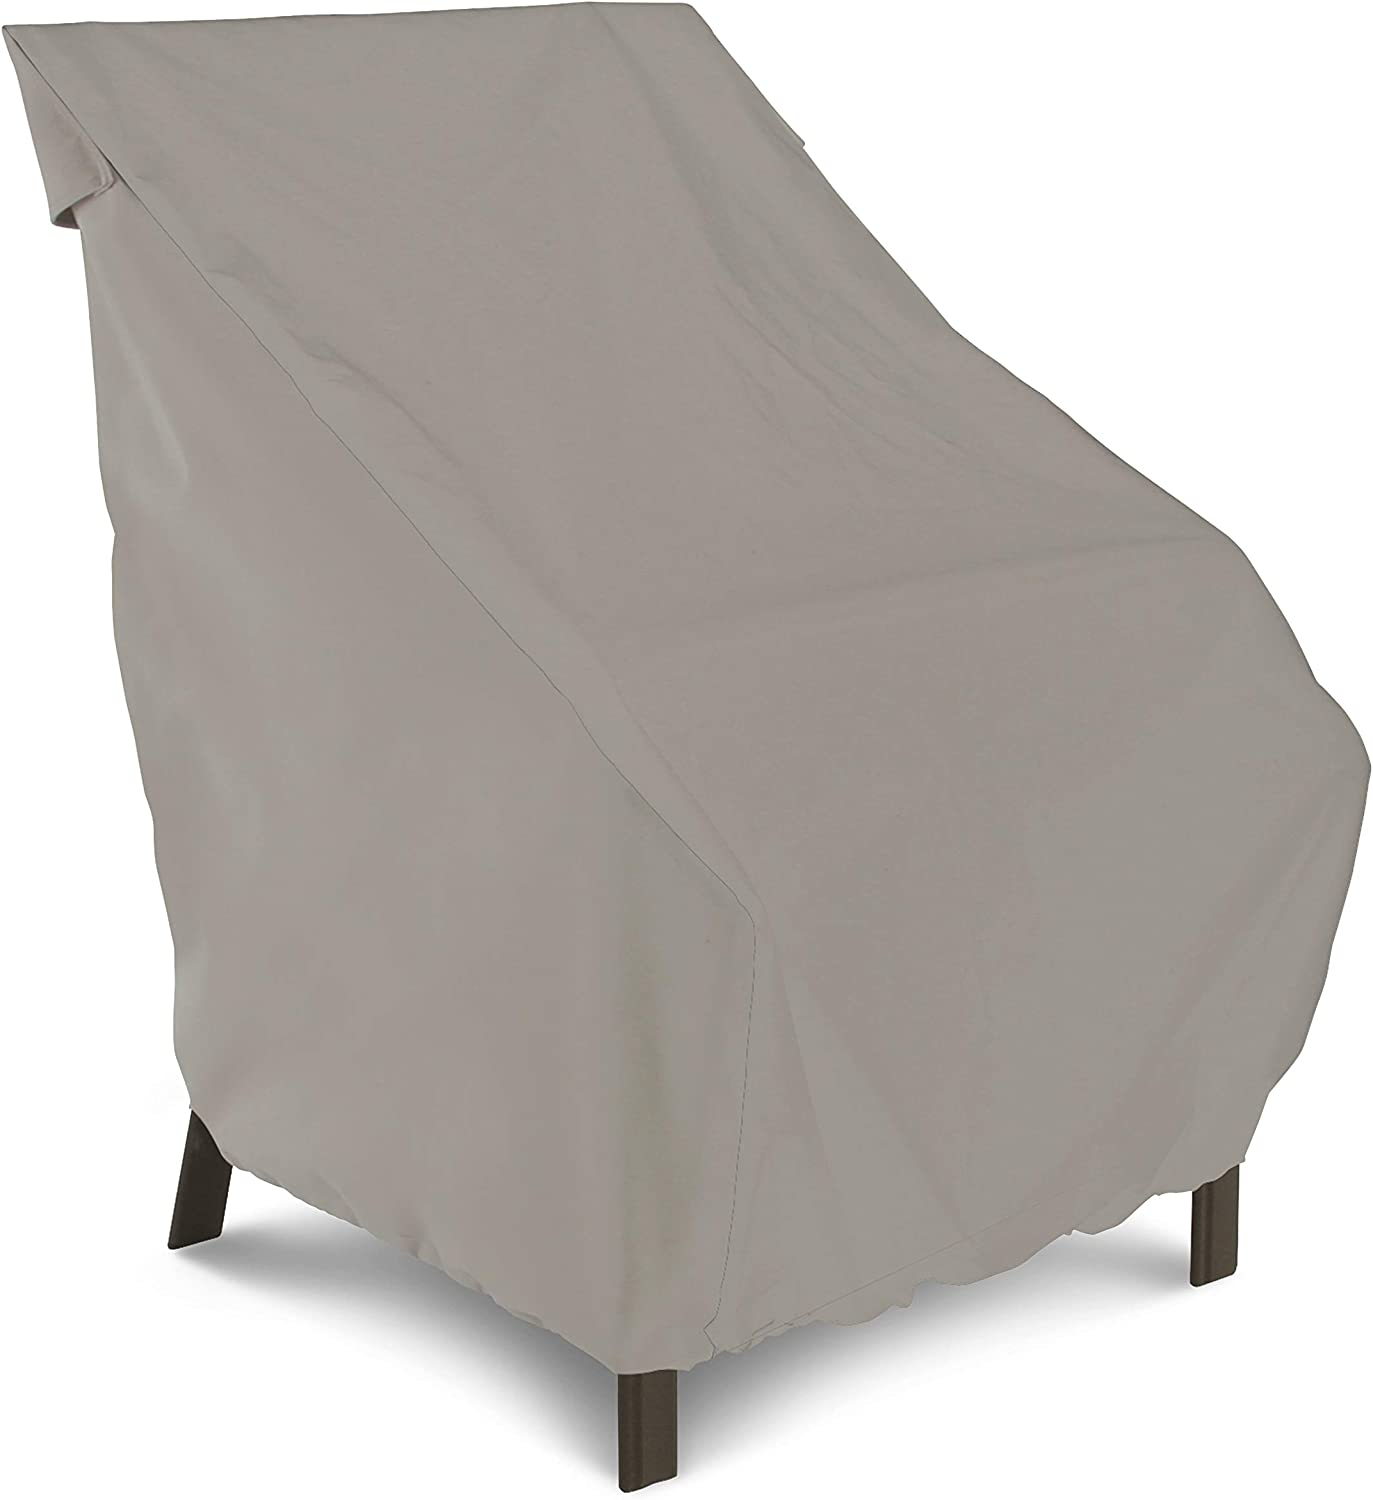 AmazonBasics Patio Dining Chair Cover 2 Pack , Grey